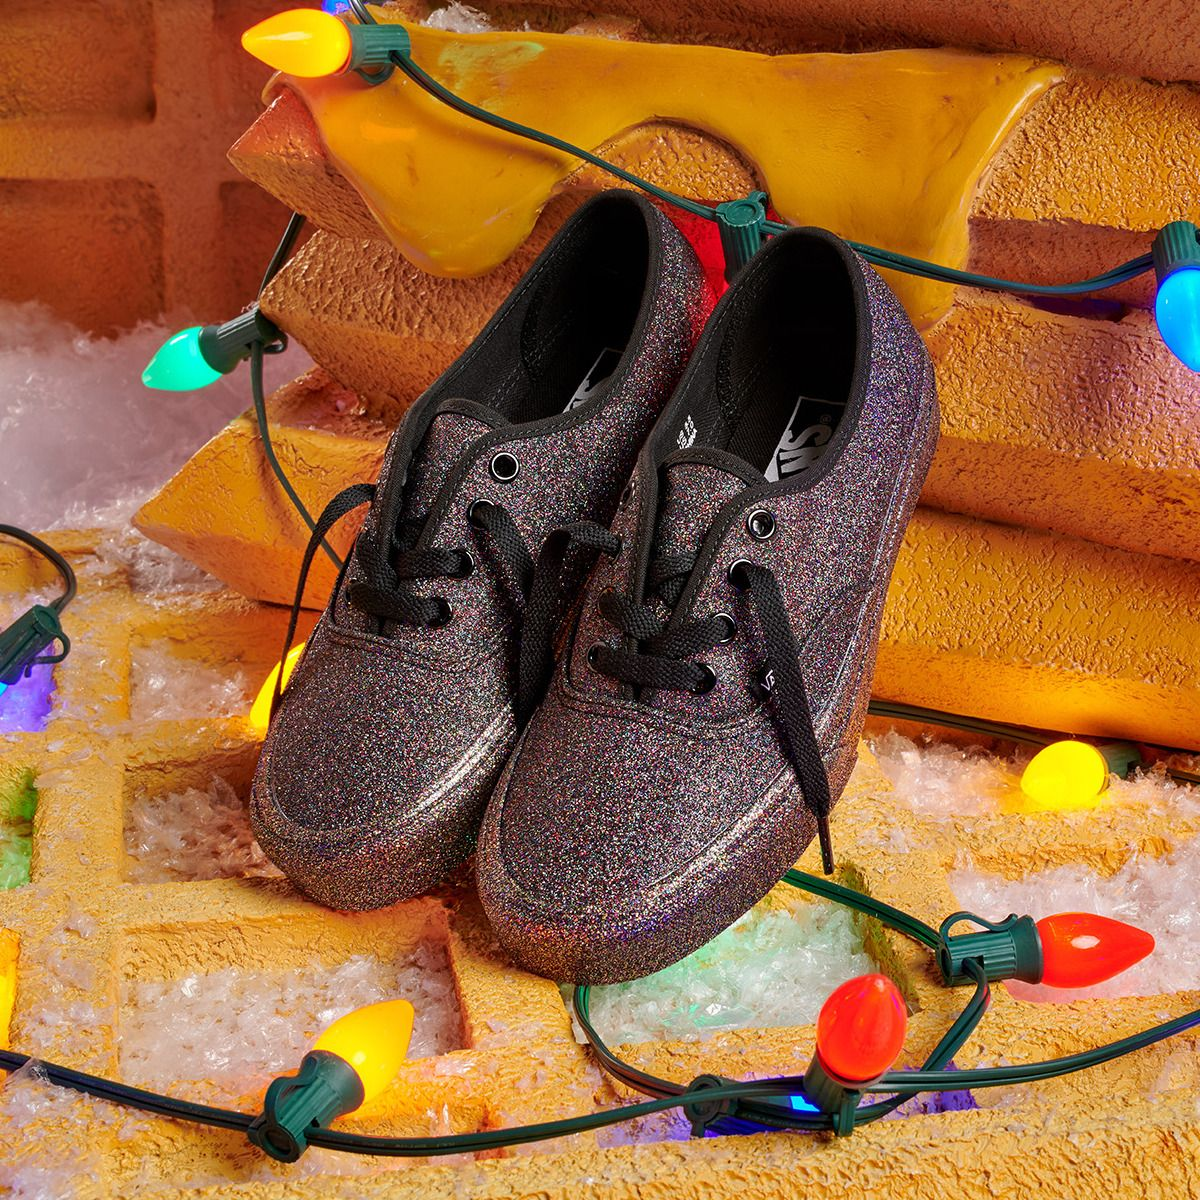 566d8d6c98cd Add some sparkle with the Rainbow Glitter Authentic. Explore the Gift Guide  at vans.com giftguide